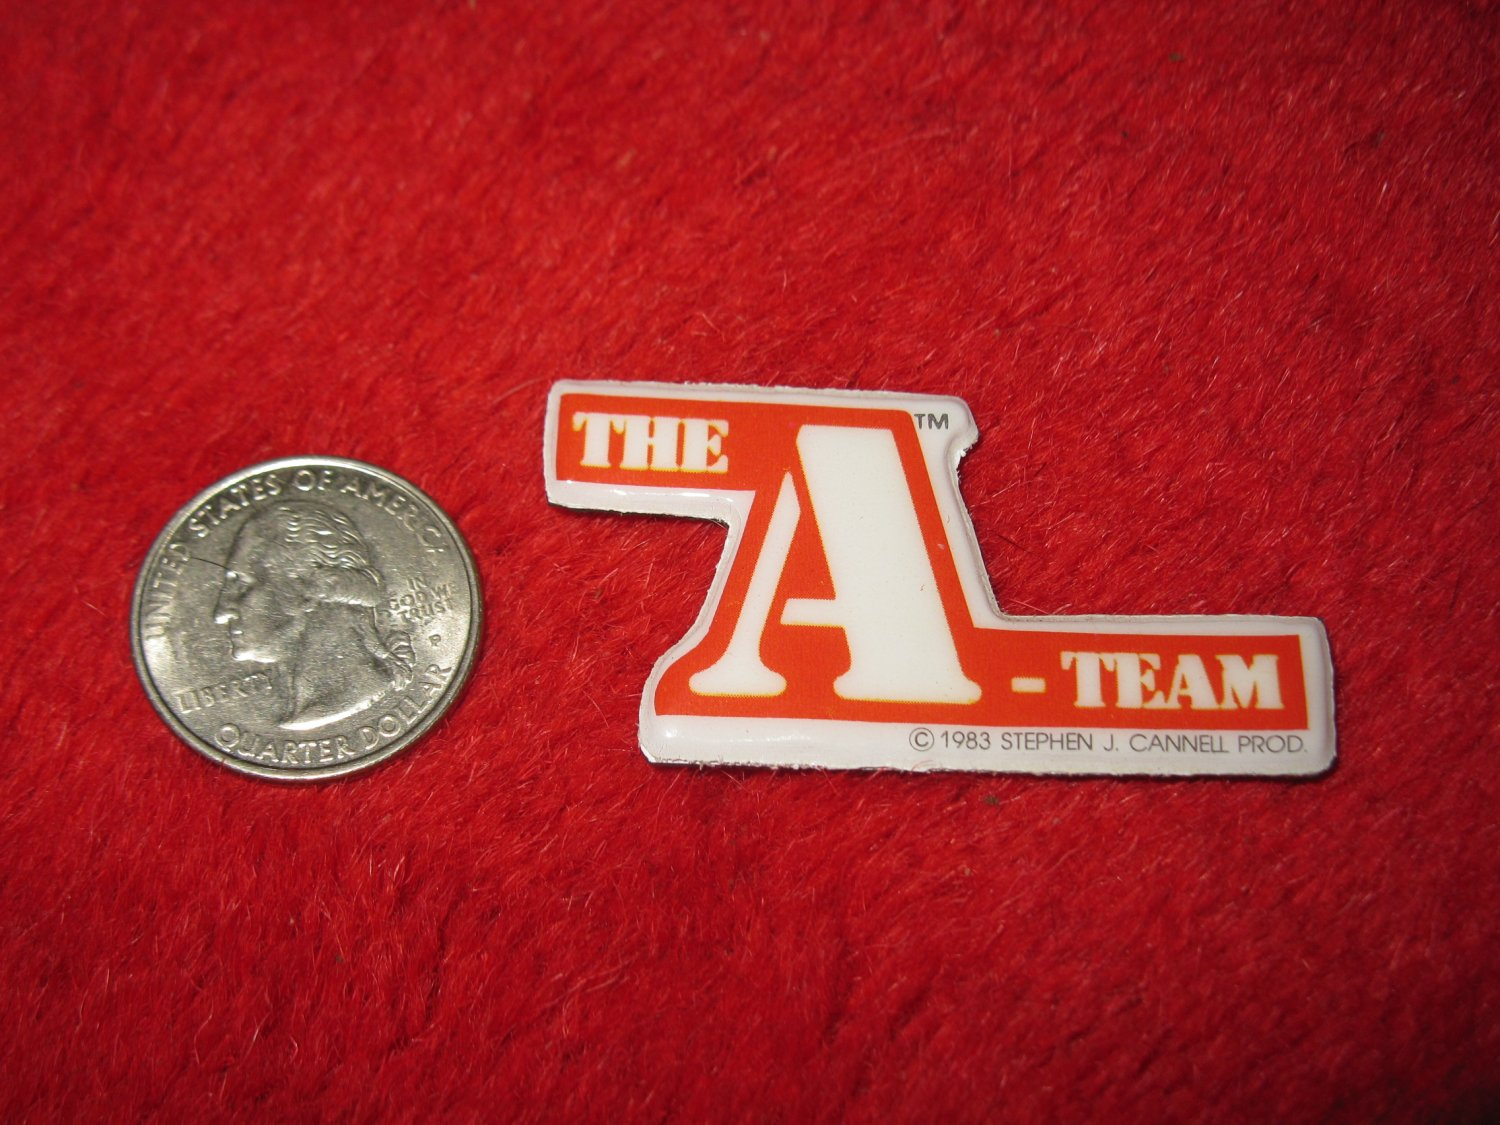 1983 The A-Team TV Show Refrigerator Magnet: Logo